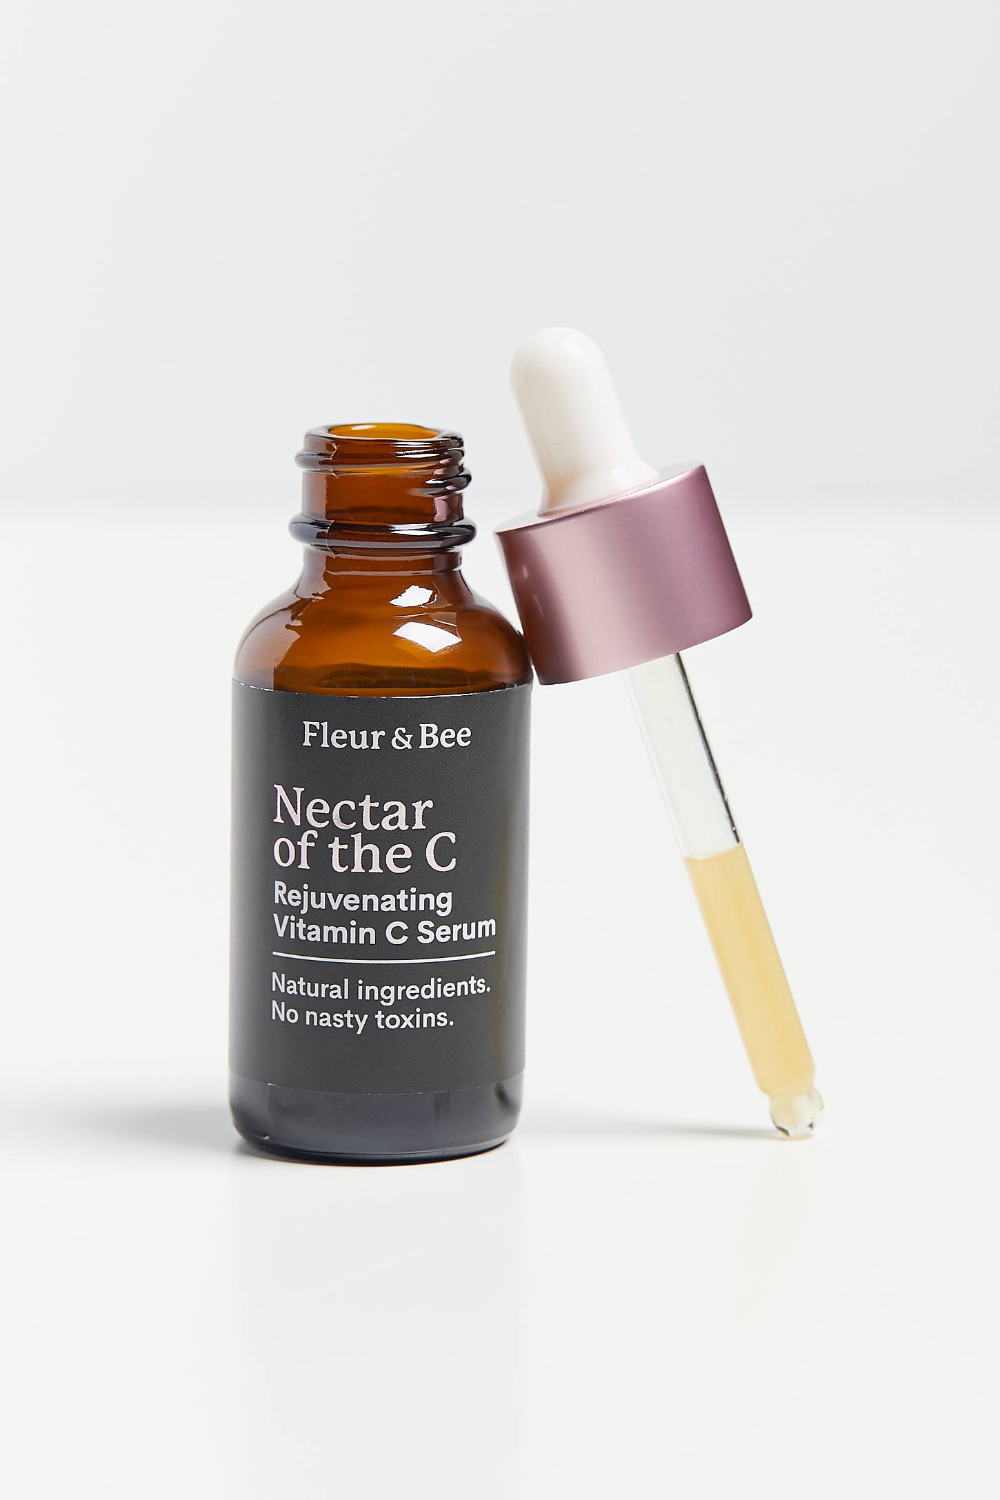 Fleur Bee Nectar Of The C Vitamin C Serum In 2020 Vitamin C Serum Vitamin C Vitamins